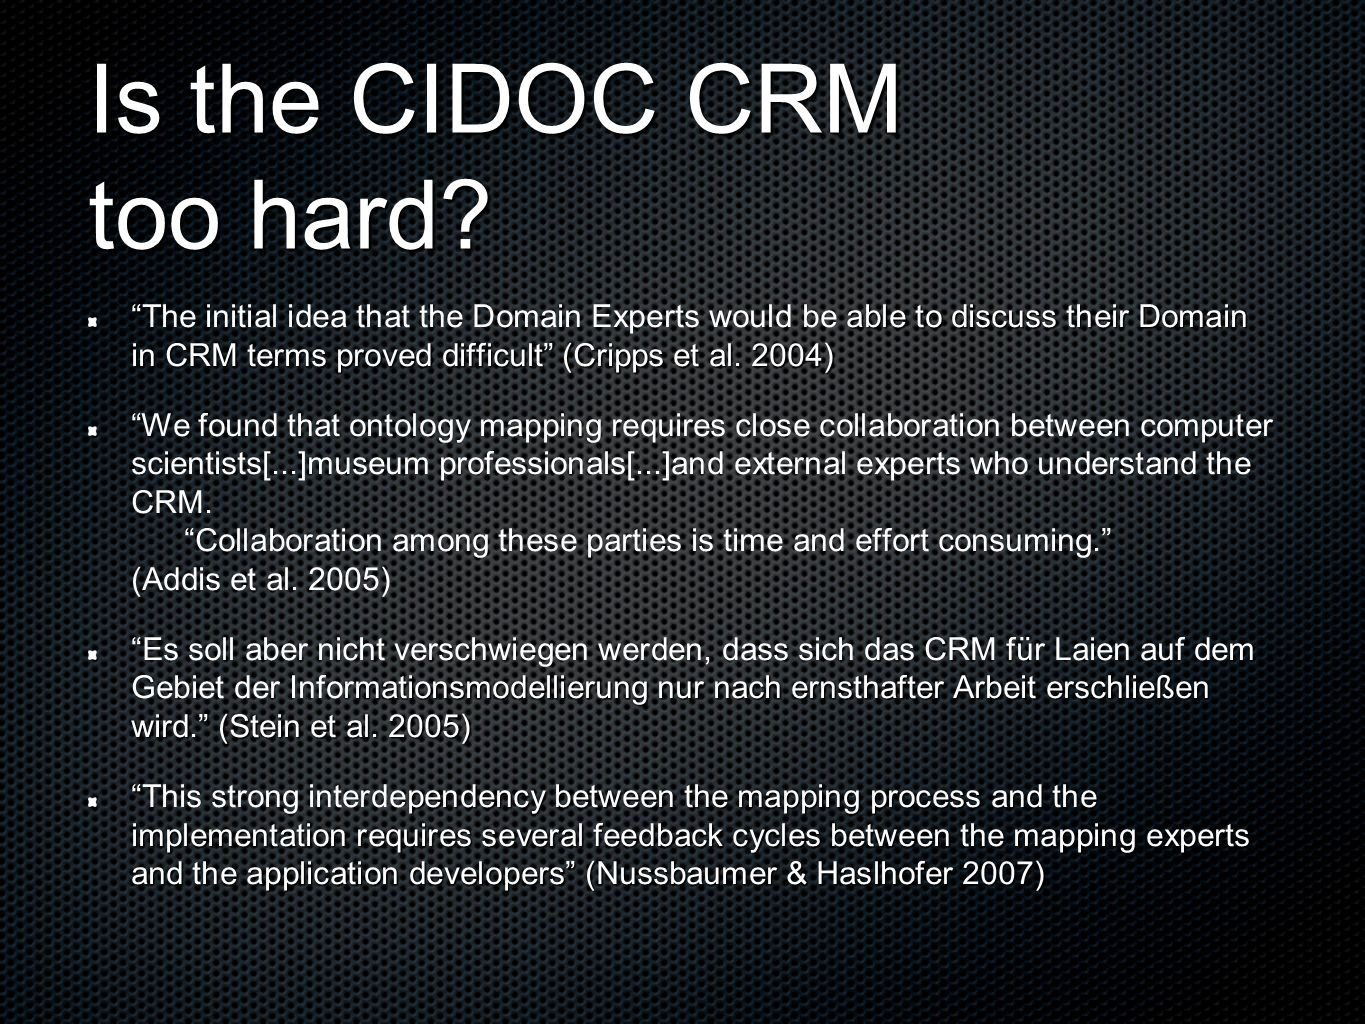 Is the CIDOC CRM too hard? able to discuss their Domain in CRM terms proved difficult (Cripps et al. 2004)The initial idea that the Domain Experts wou